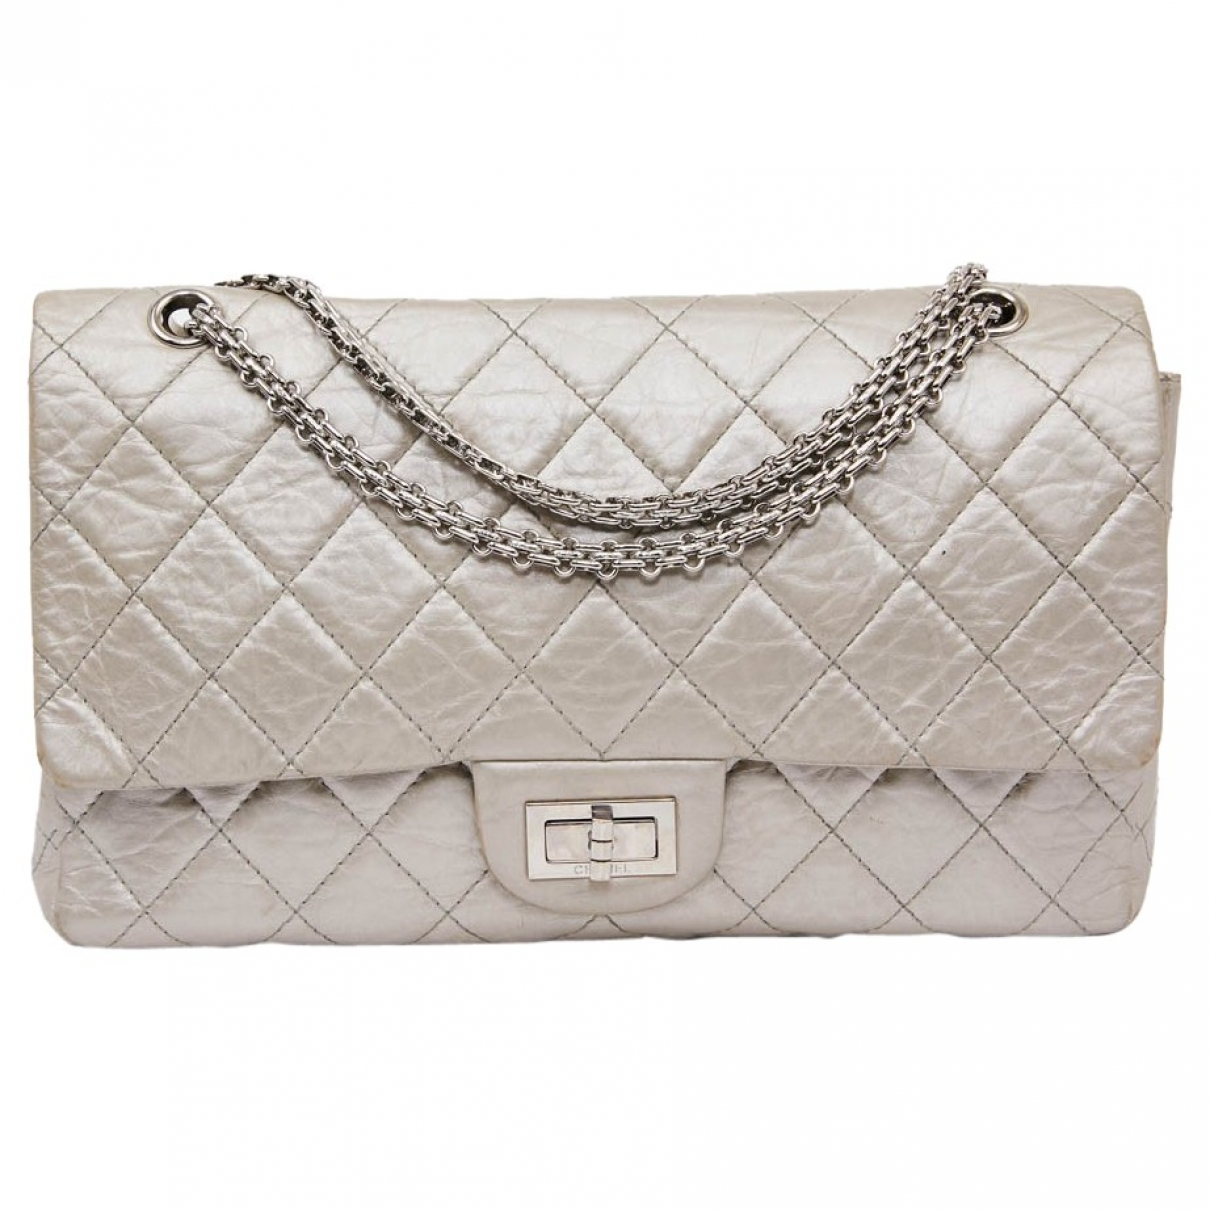 Chanel 2.55 Silver Leather handbag for Women \N